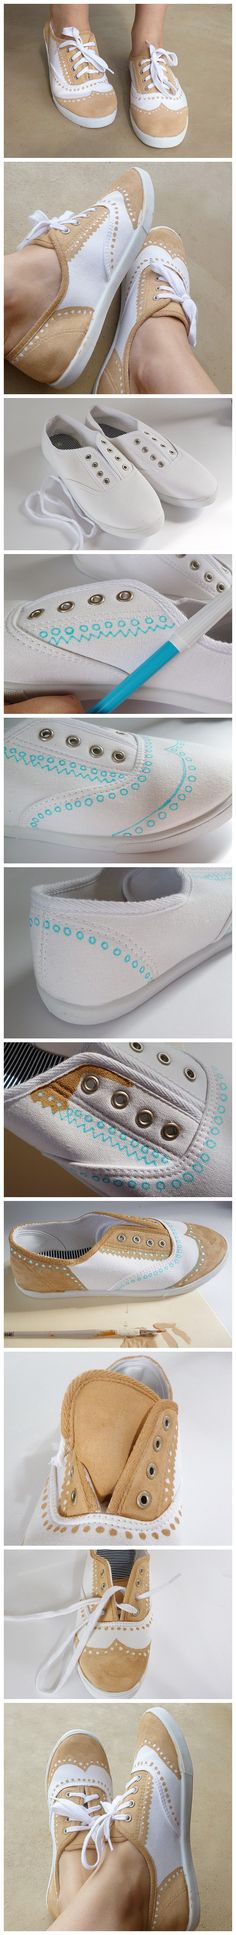 DIY saddle shoes. ohhhmmyygosh i must do this.